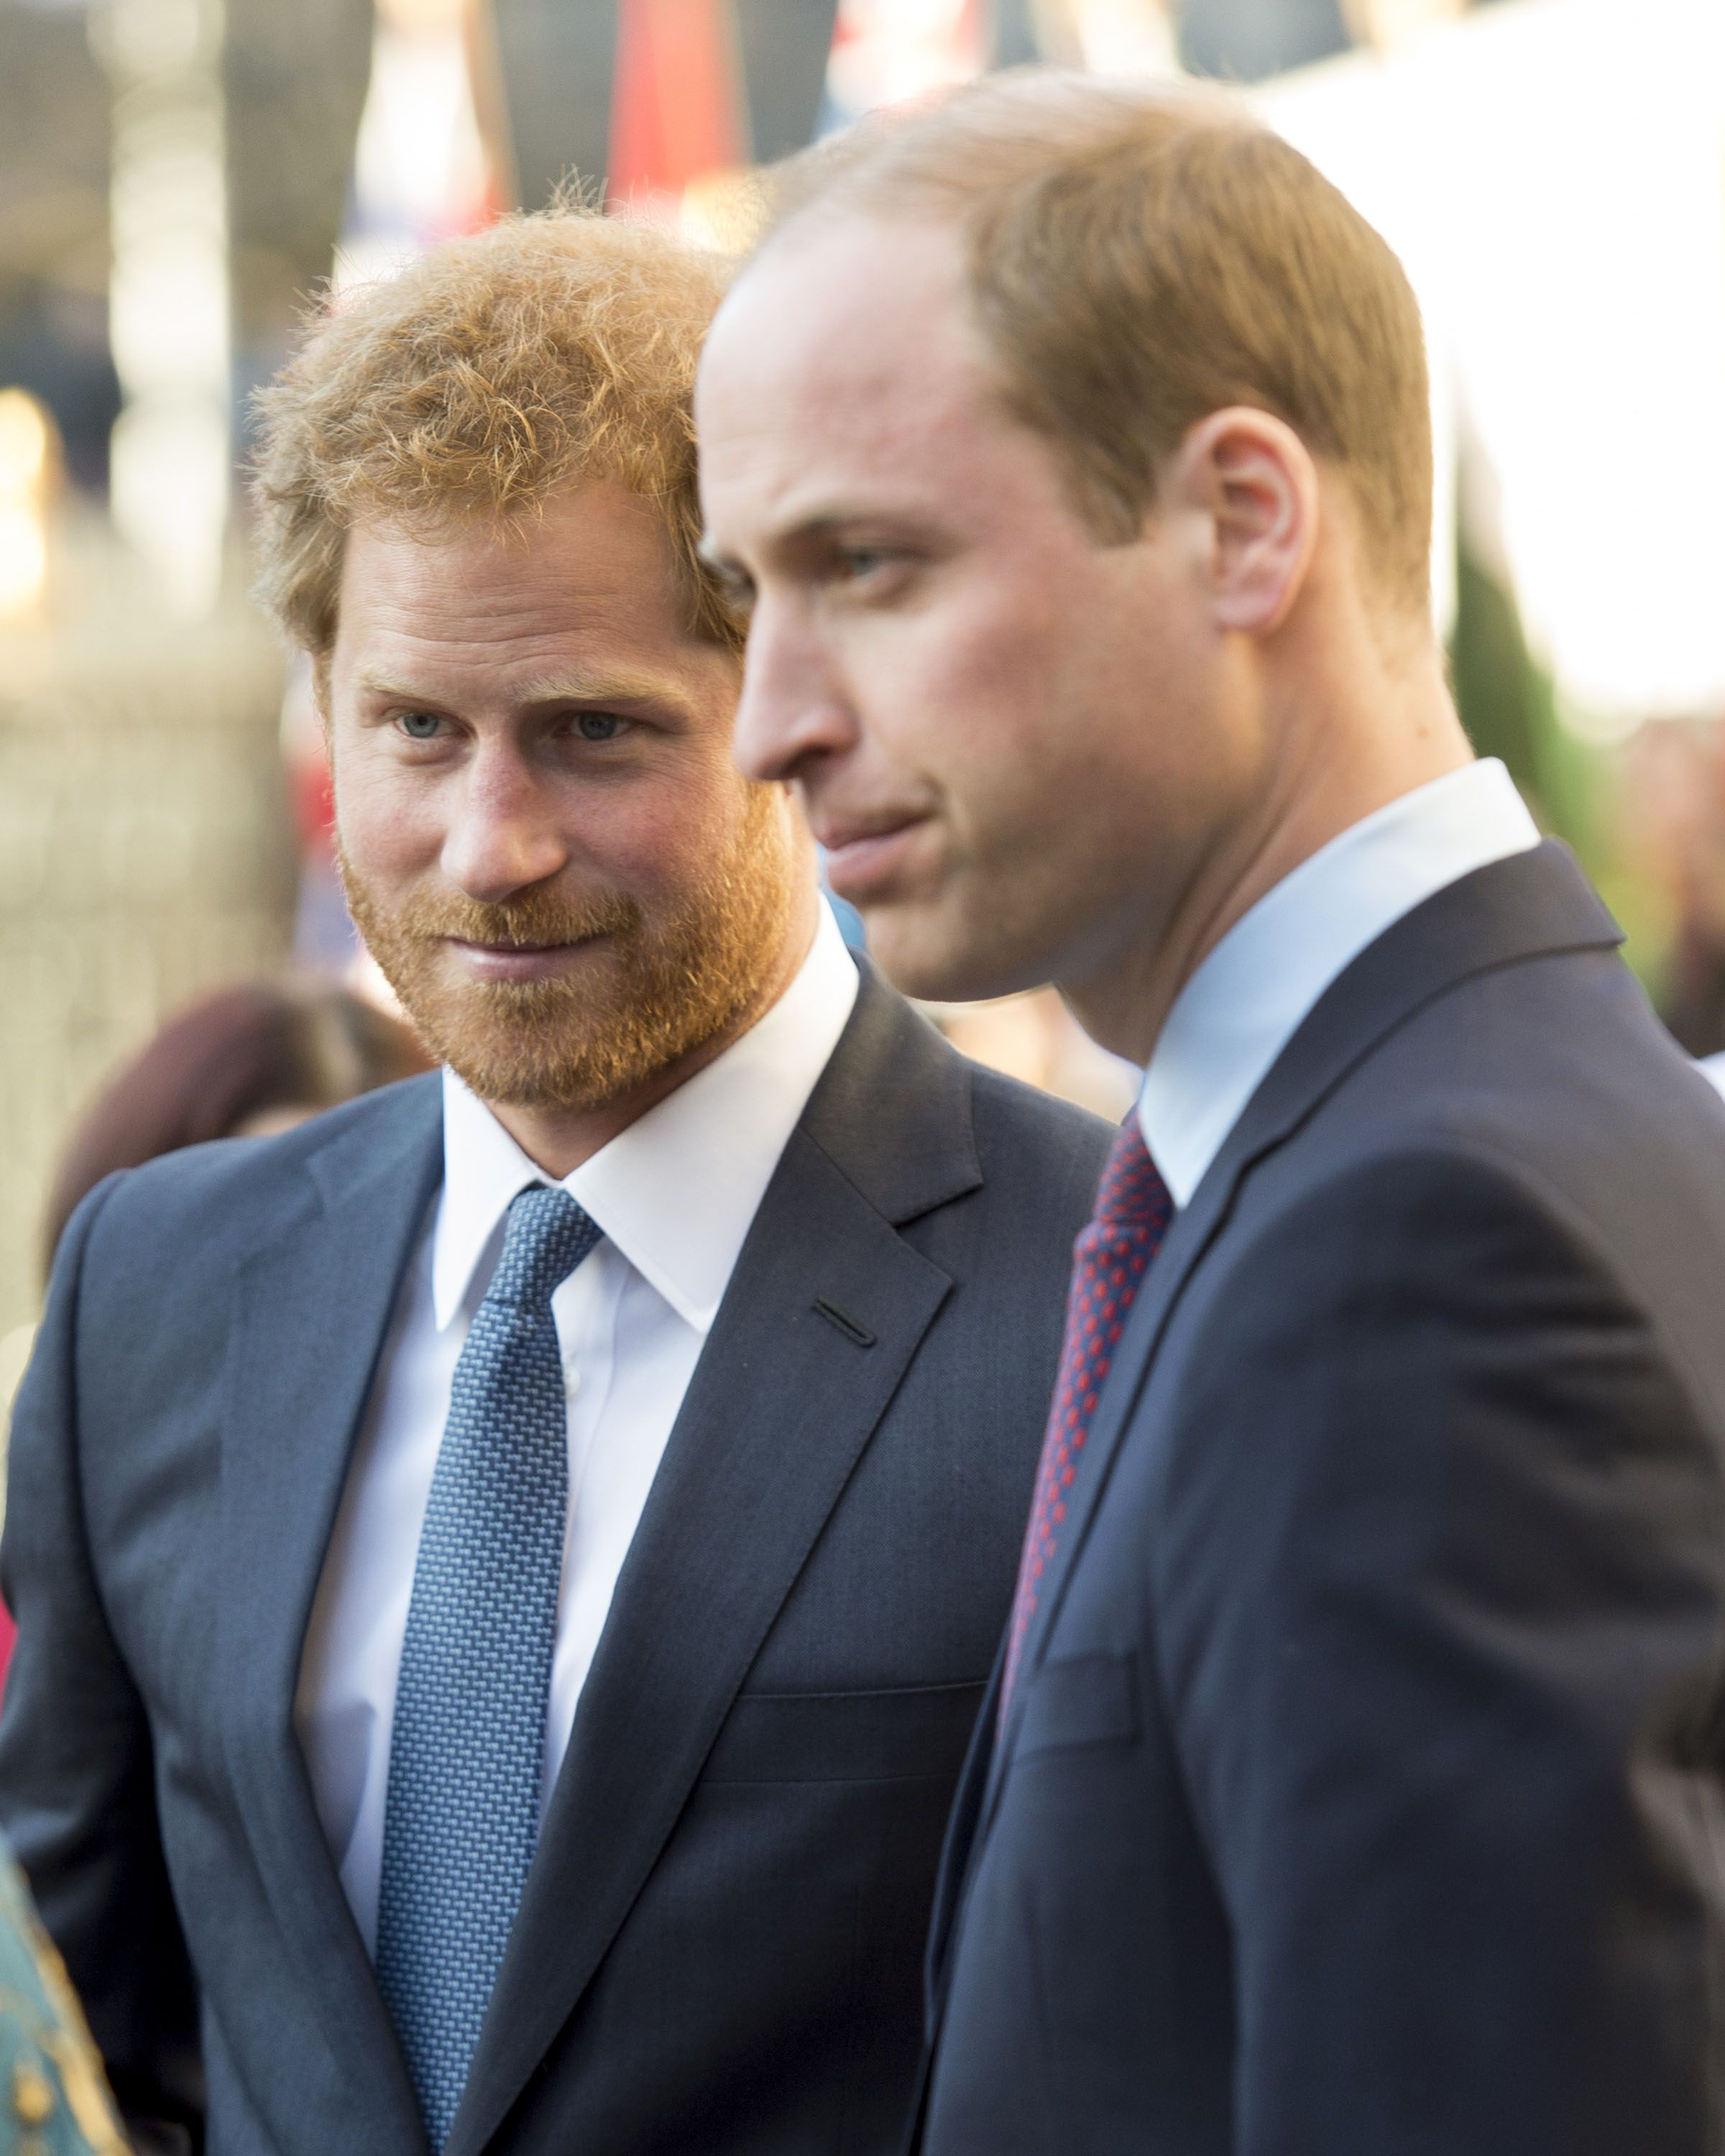 Topic Prince Harry: Prince Charles News, Articles, Stories & Trends For Today